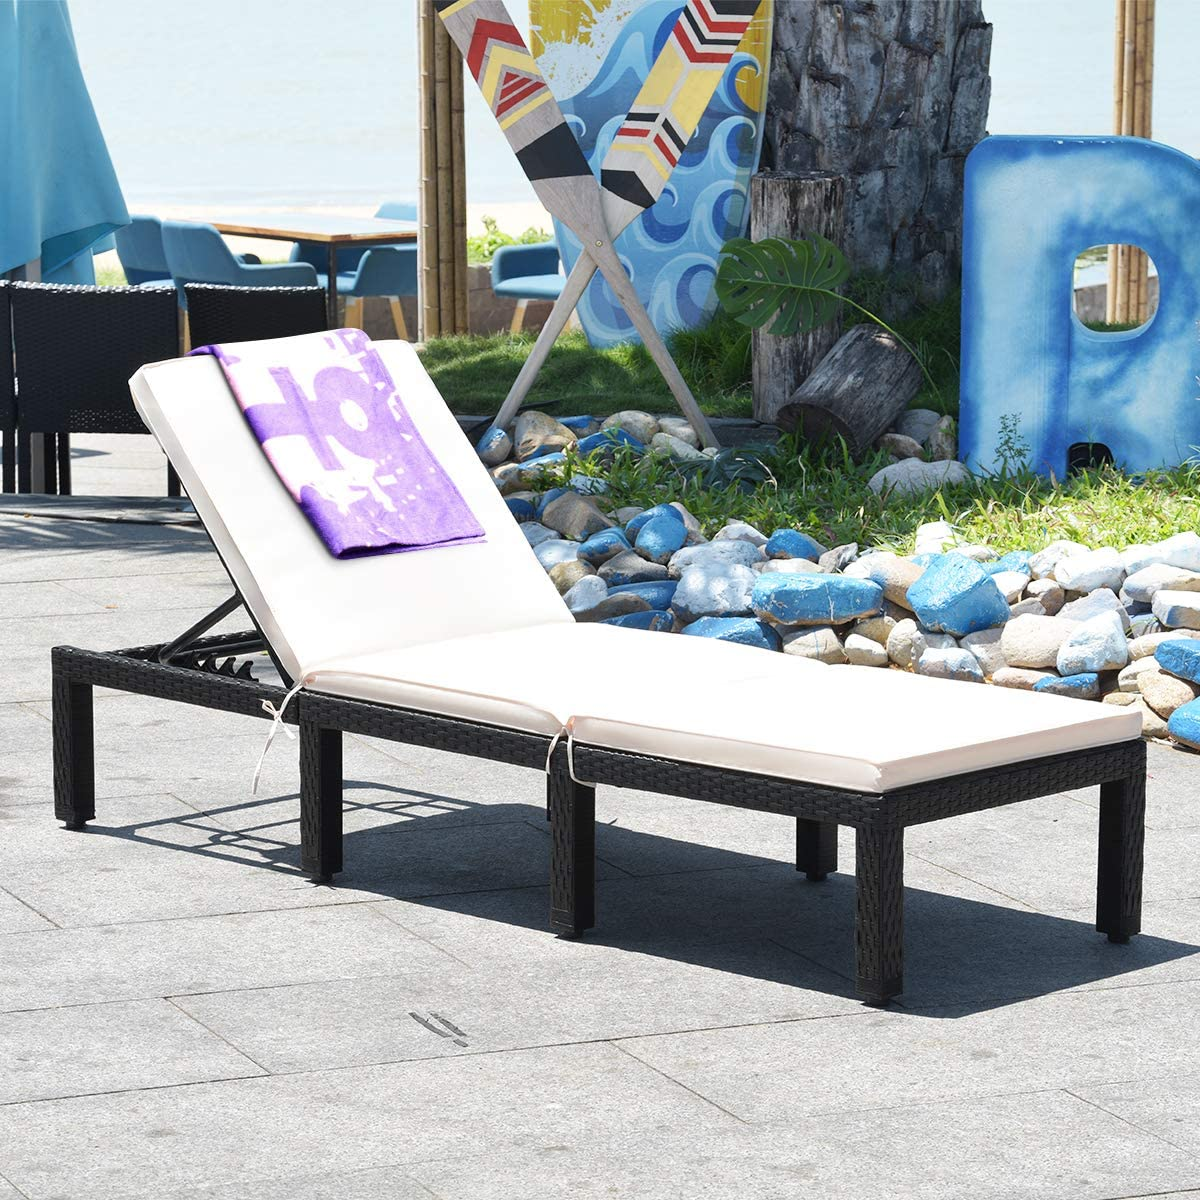 HAPPYGRILL Patio Rattan Lounge Chair Outdoor Adjustable Reclining Wicker Chaise Chair with Backrest Cushion